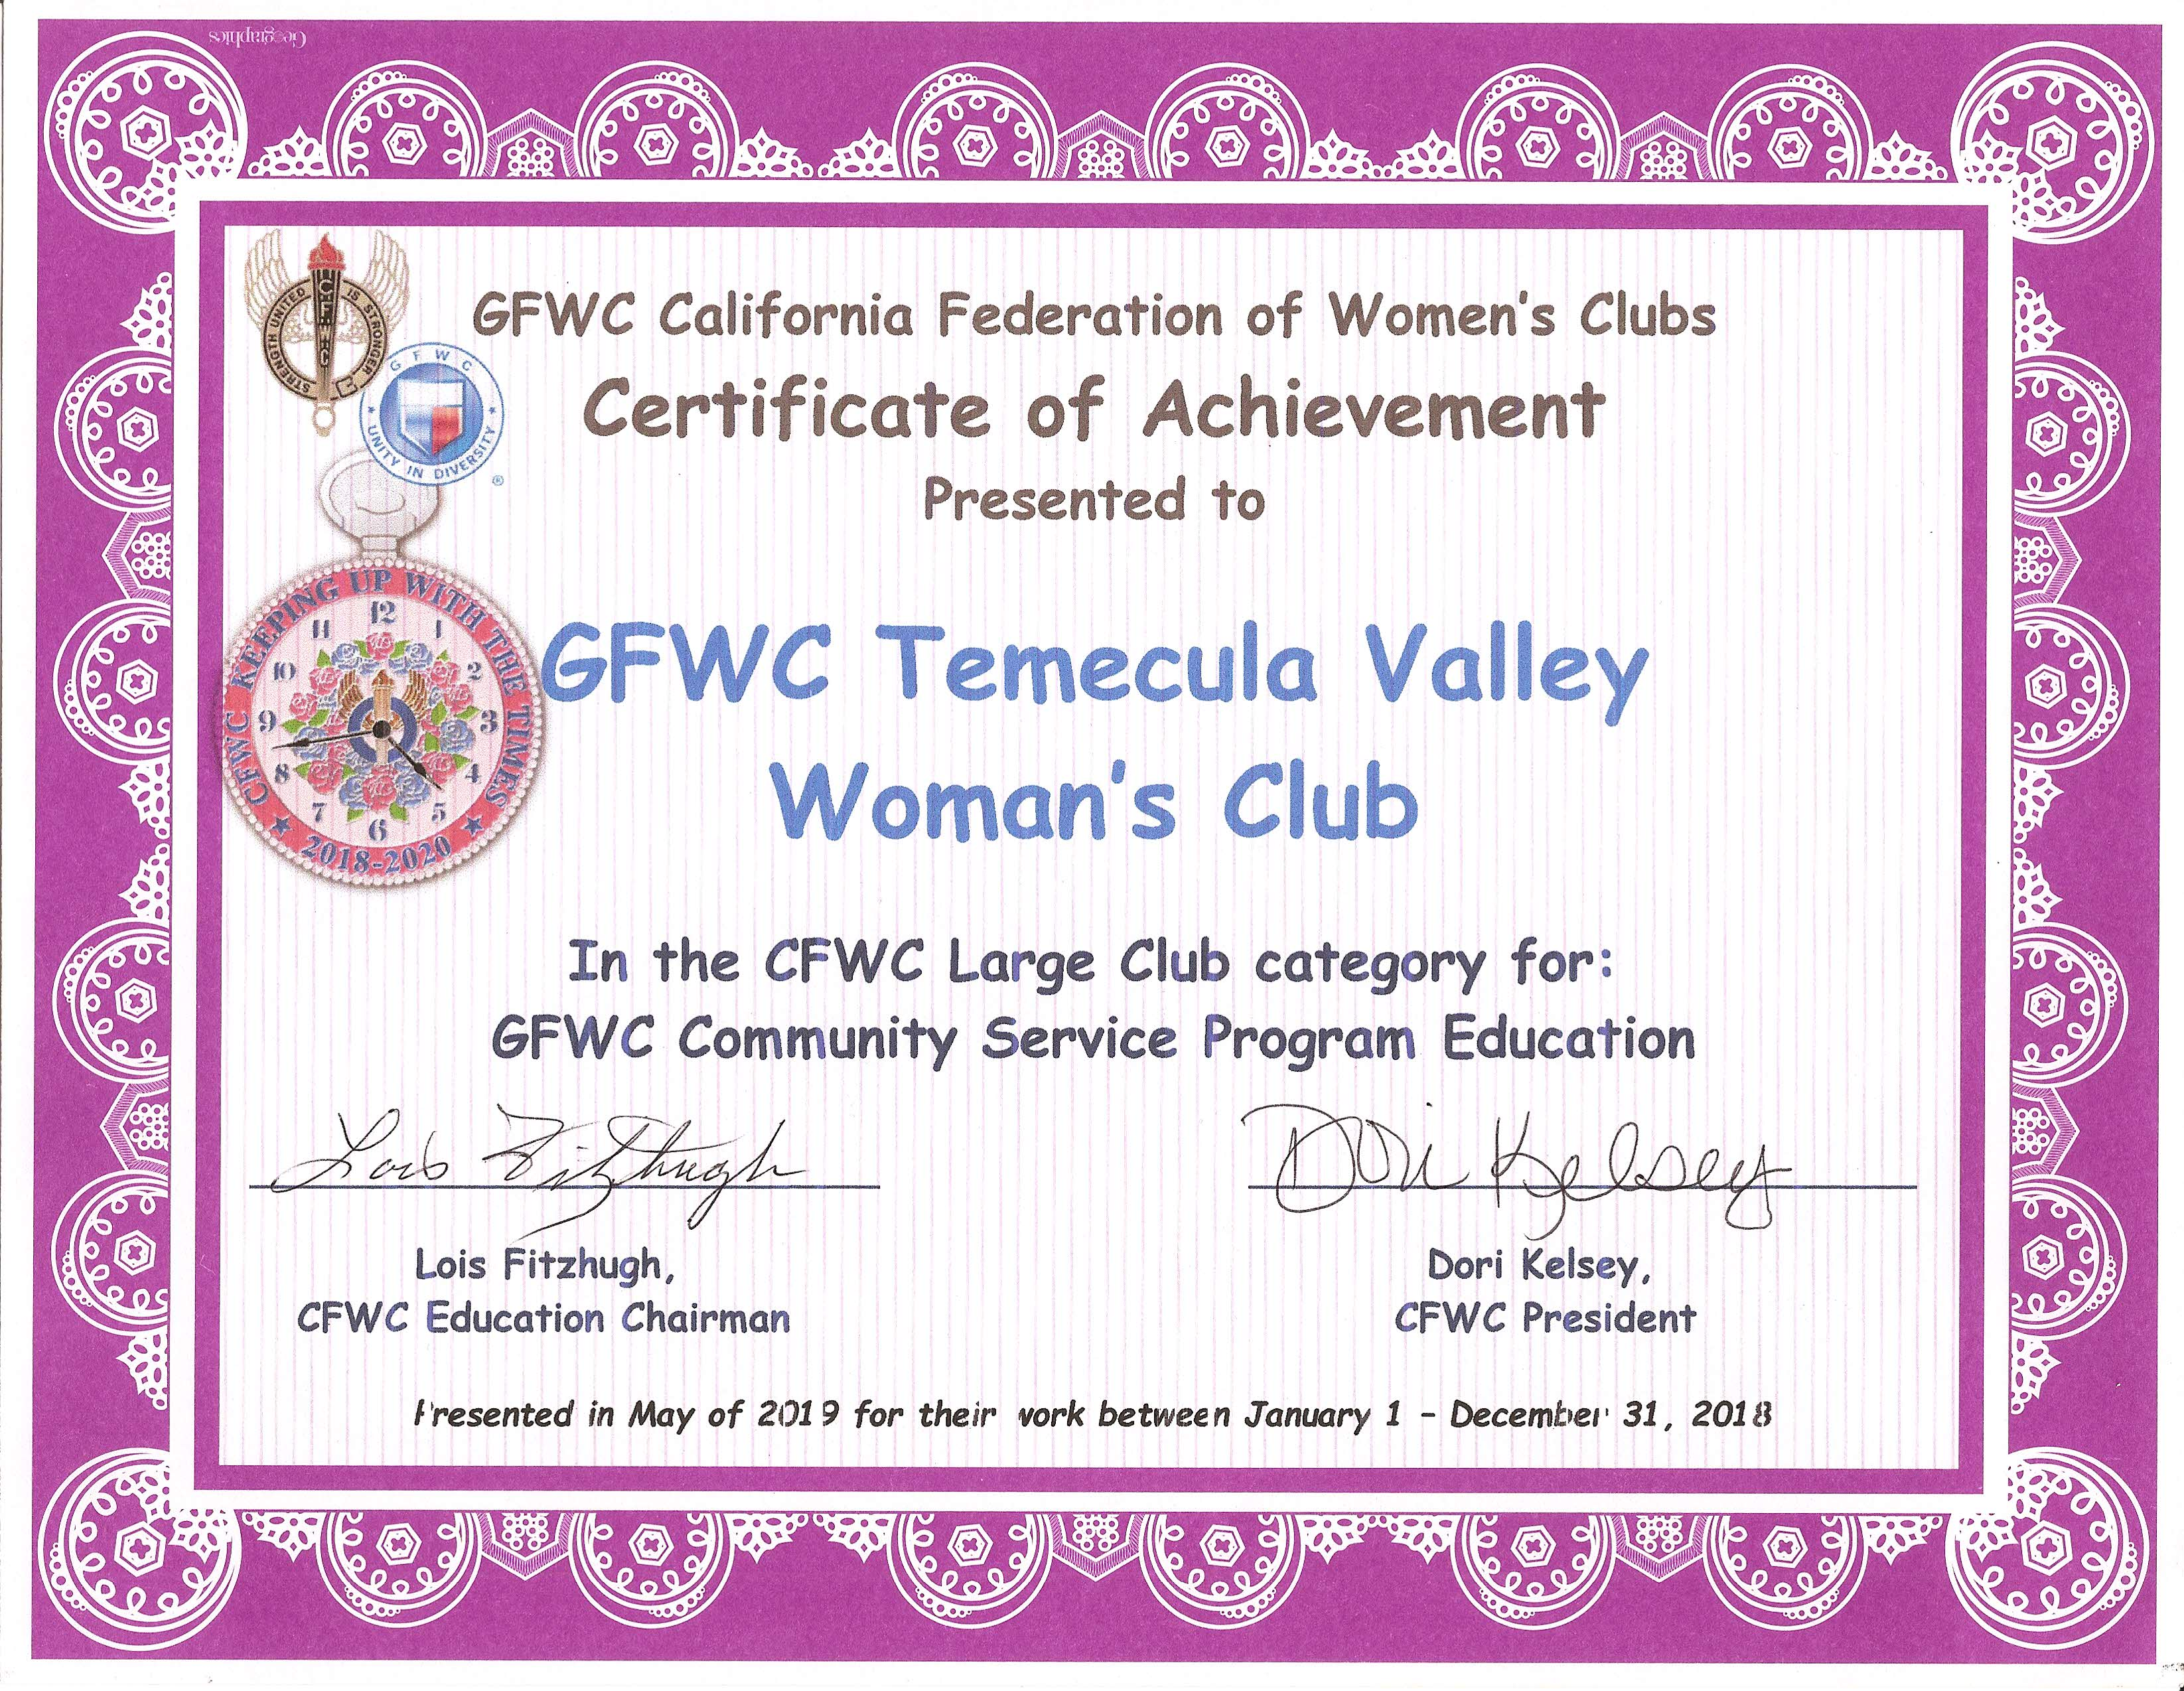 Community Service Program Education - Large Club - CFWC May 2019